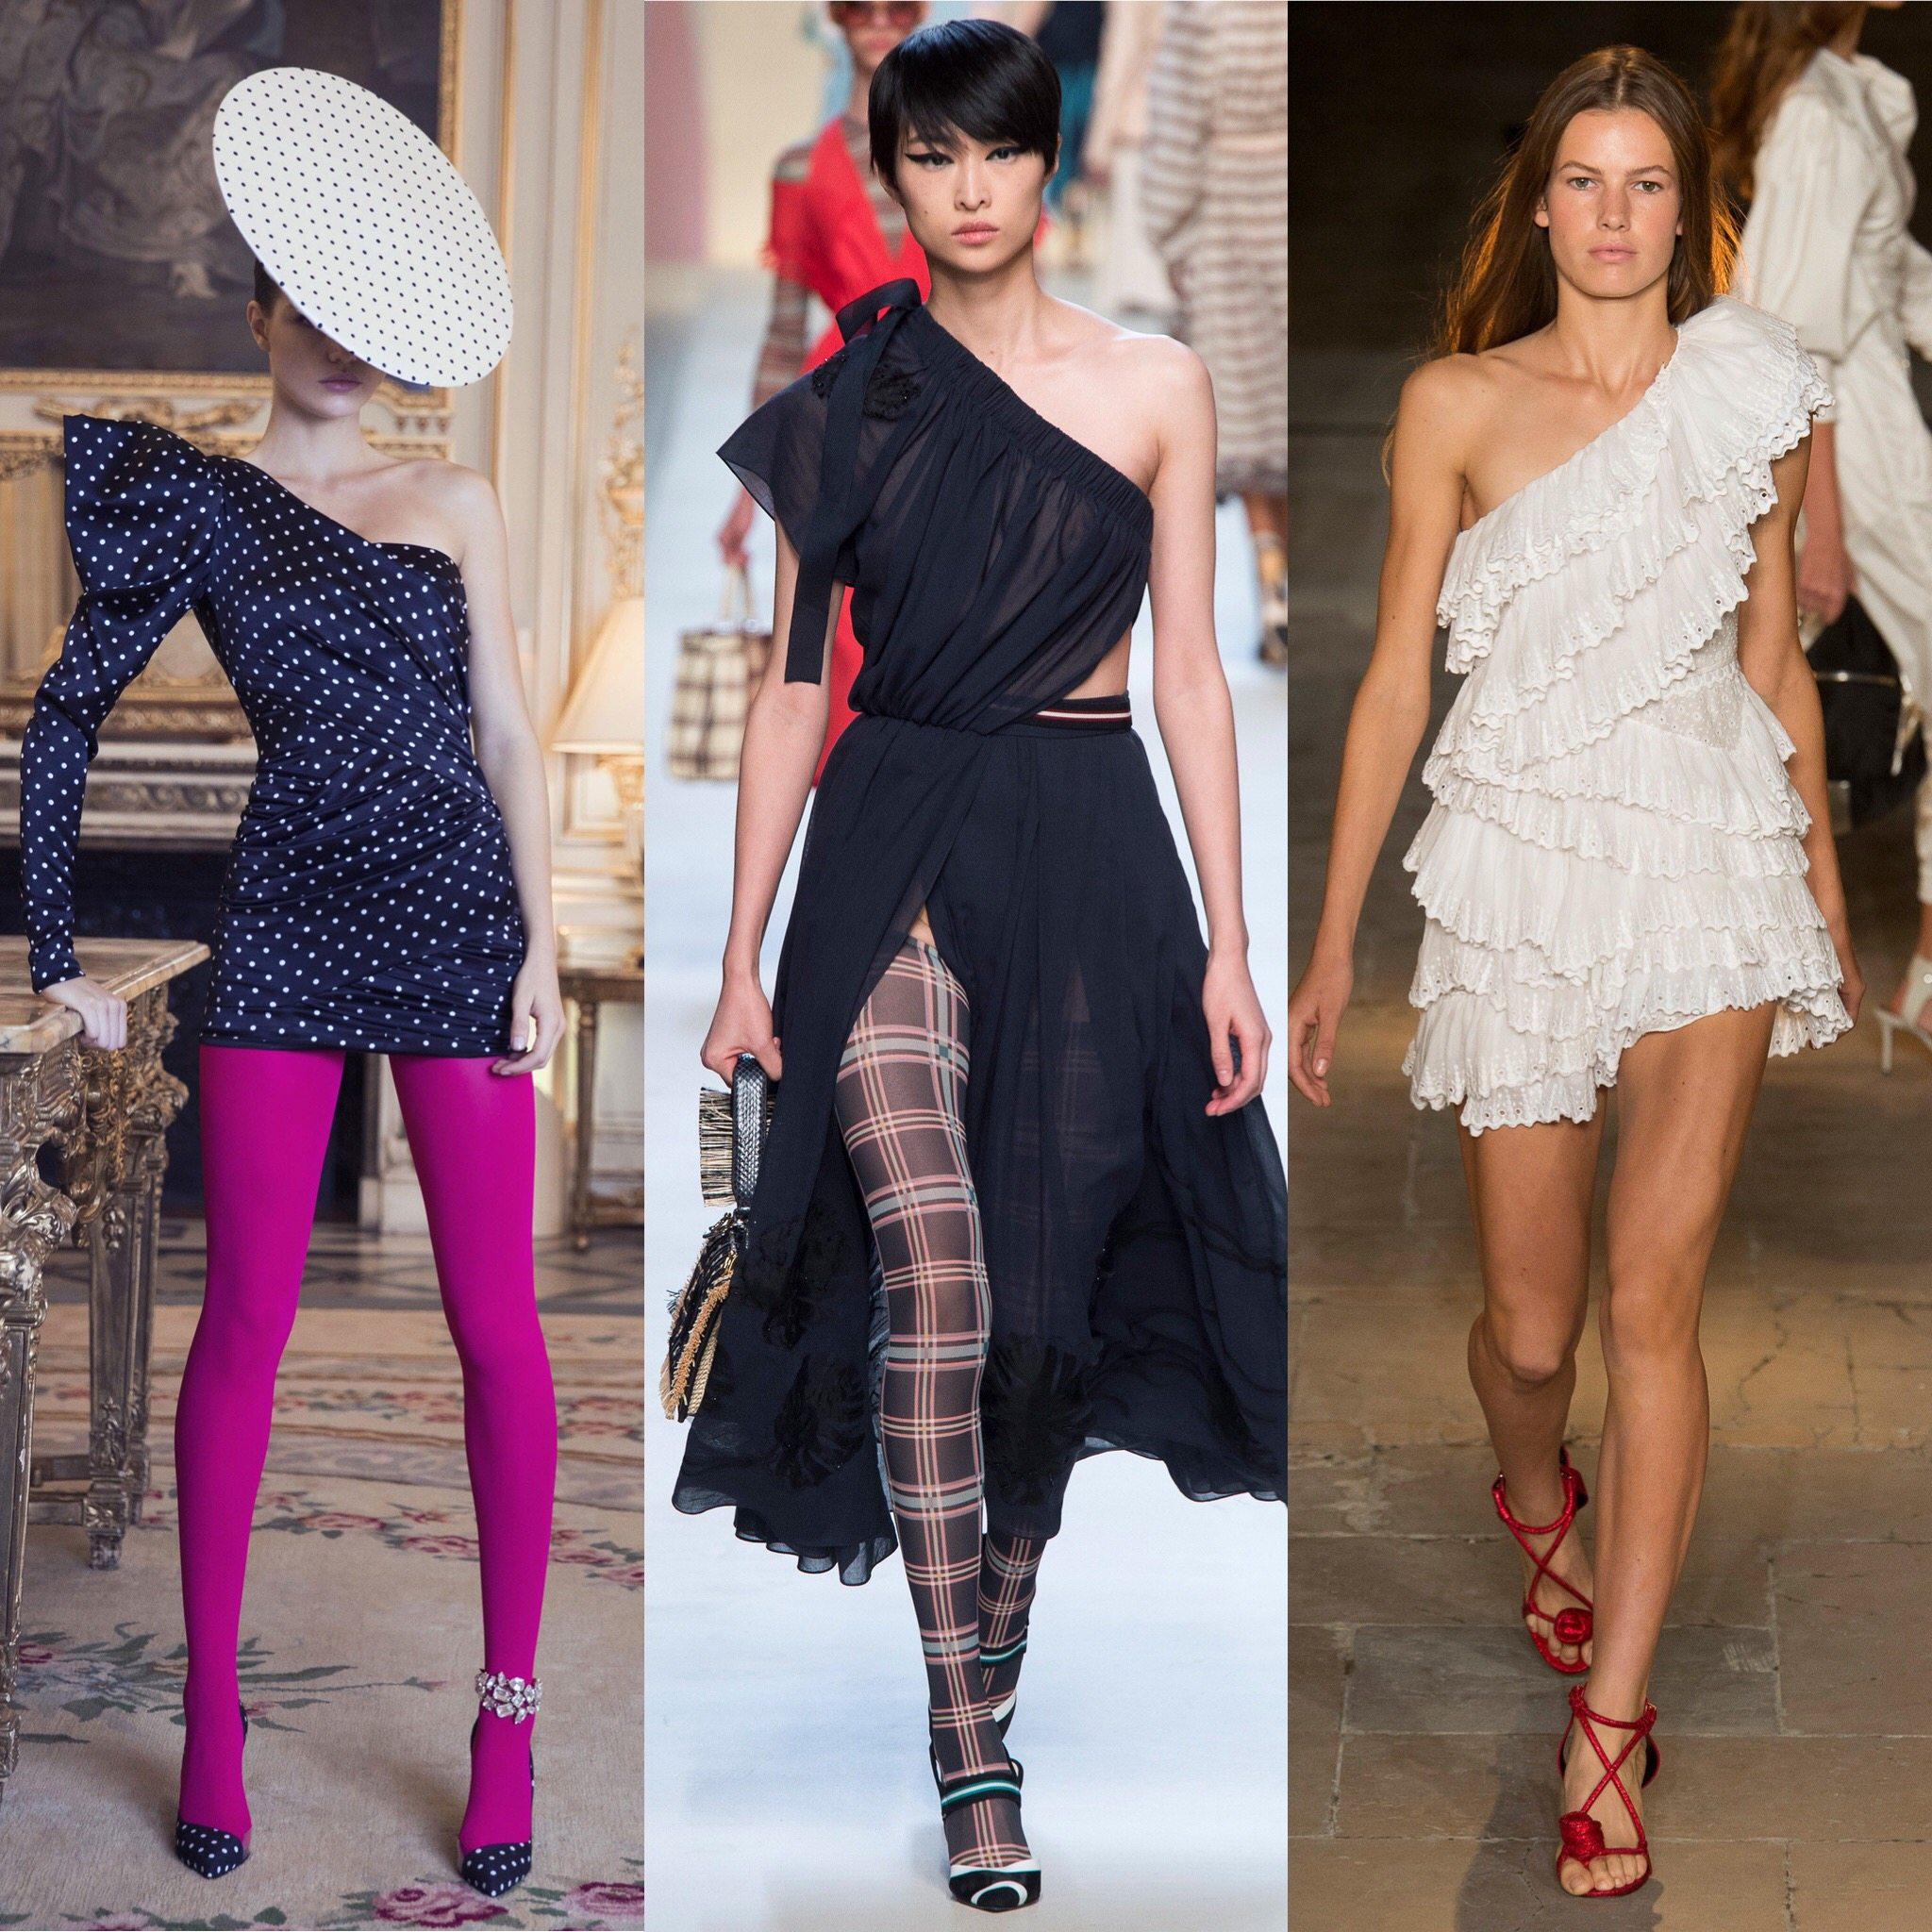 Spring 2018 Trends: Fashion Week coverage - One shoulder dress and overalls - Alexandre Vauthier - Fendi - Isabel Marant. More on Houseofcomil.com. Pictures from Vogue